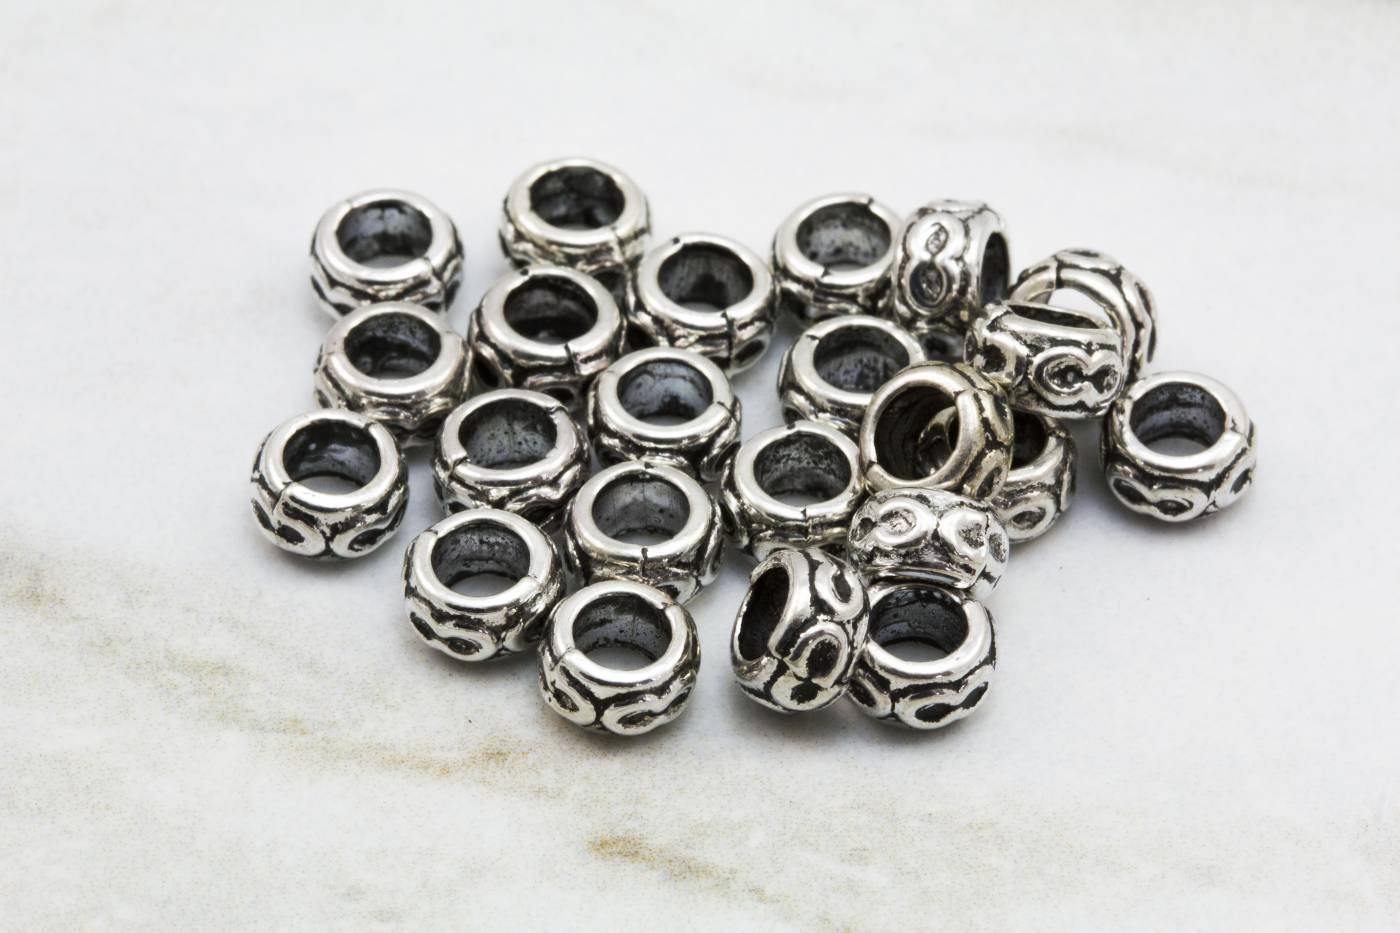 6mm-metal-silver-round-jewelry-spacers.jpg